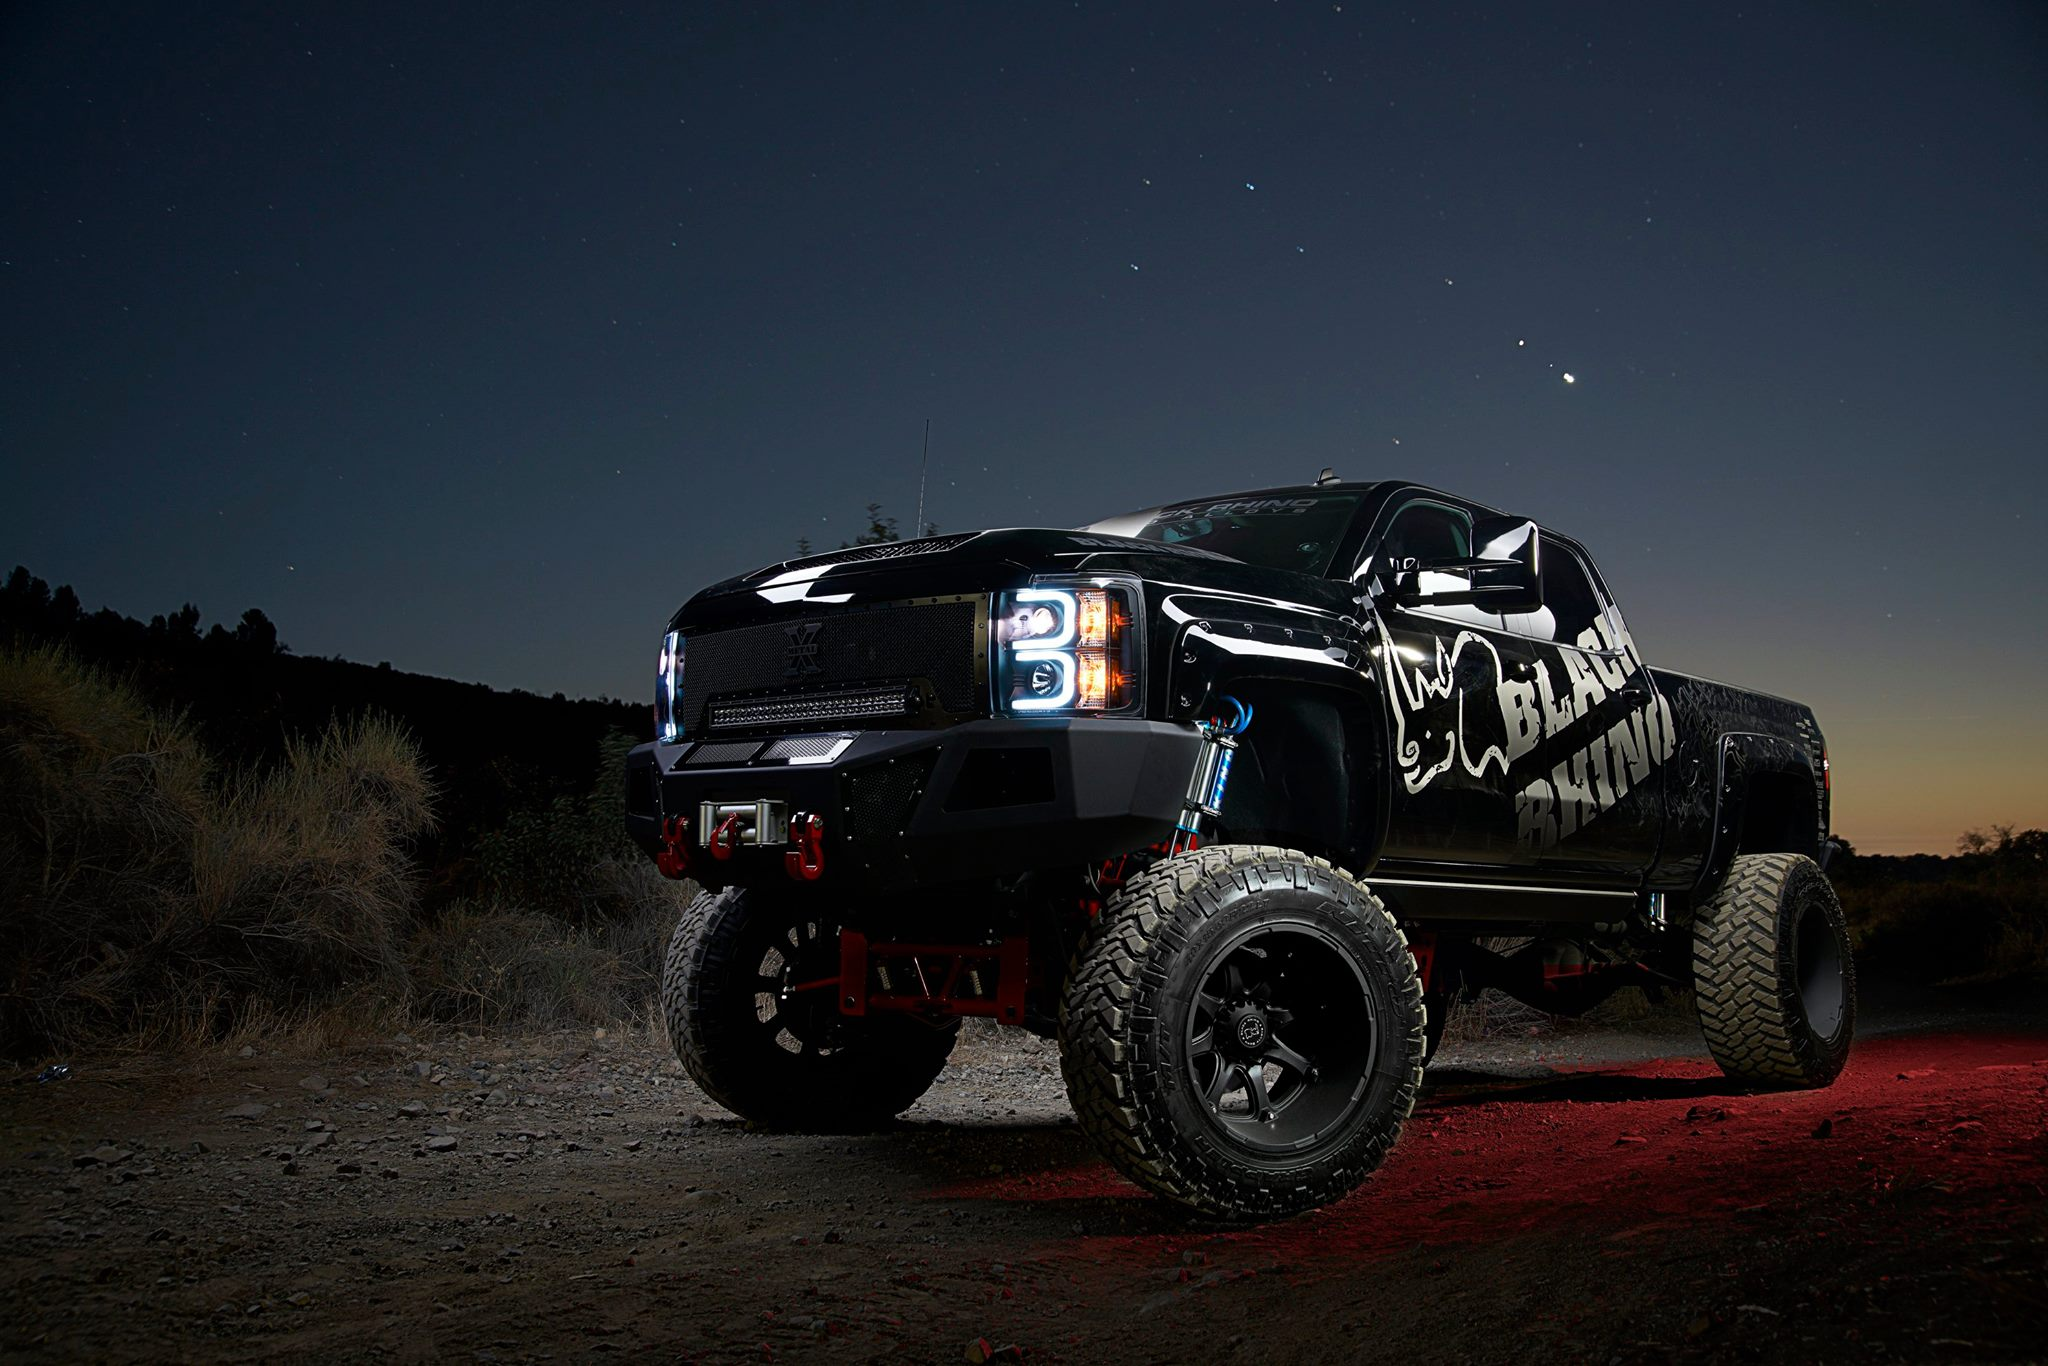 Chev 2500 on Black Rhino Glamis